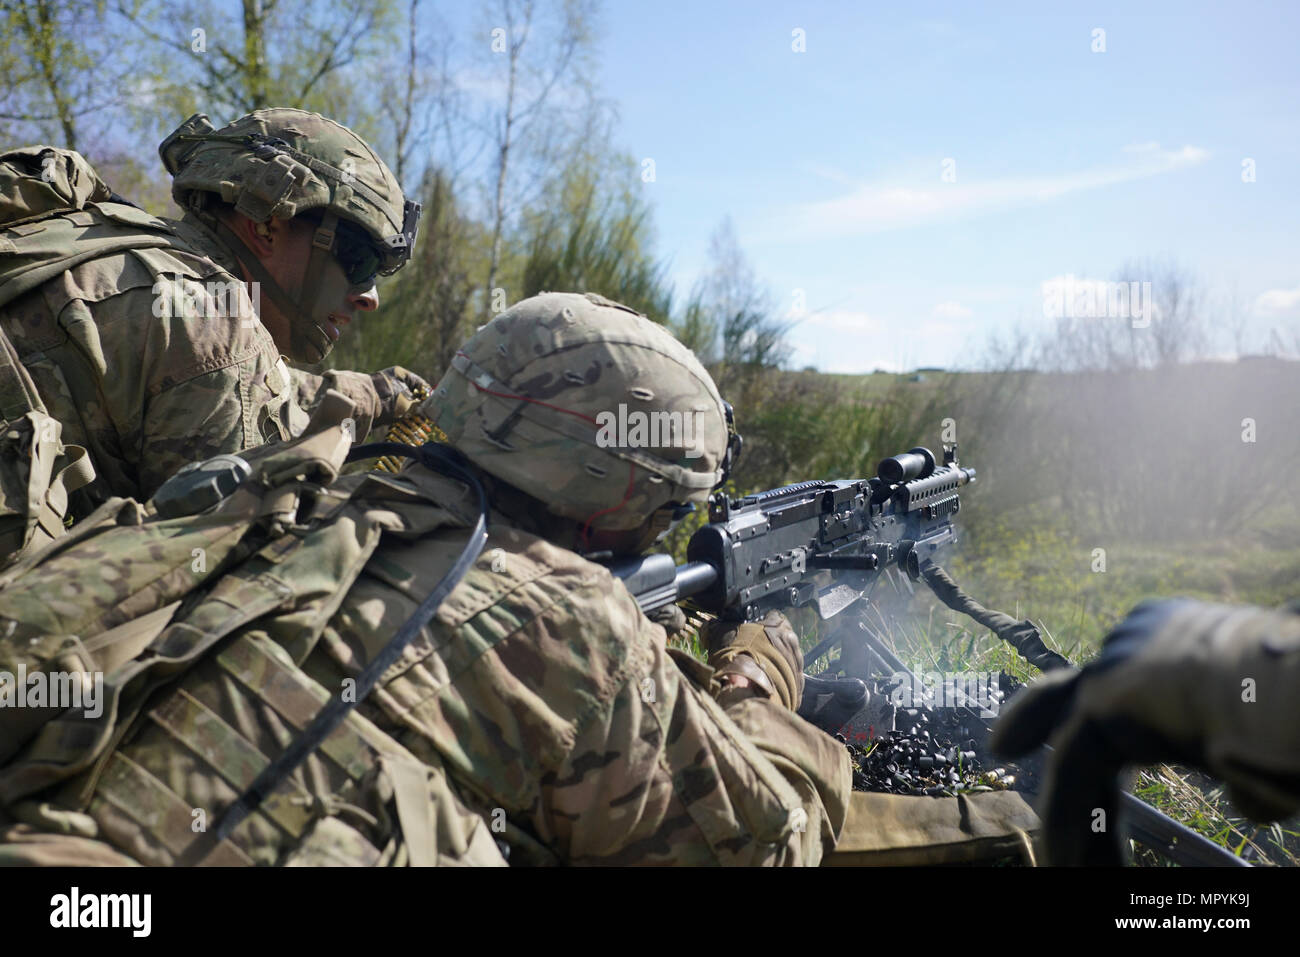 A U.S. Soldier of Comanche Troop, 4th Squadron, 10th Cavalry Regiment, 3rd Armored Brigade Combat Team, 4th Infantry Division provides suppressive fire with an M240 while conducting a live fire operation during Exercise Combined Resolve VIII at the Grafenwoehr Training Area, Germany April 24, 2017. Exercise Combined Resolve VIII is a multinational exercise designed to train the Army's Regionally Allocated Forces to the U.S. European Command. Combined Resolve VIII will include more than 3,400 participants from 10 nations. The goal of the exercise is to prepare forces in Europe to operate togeth - Stock Image